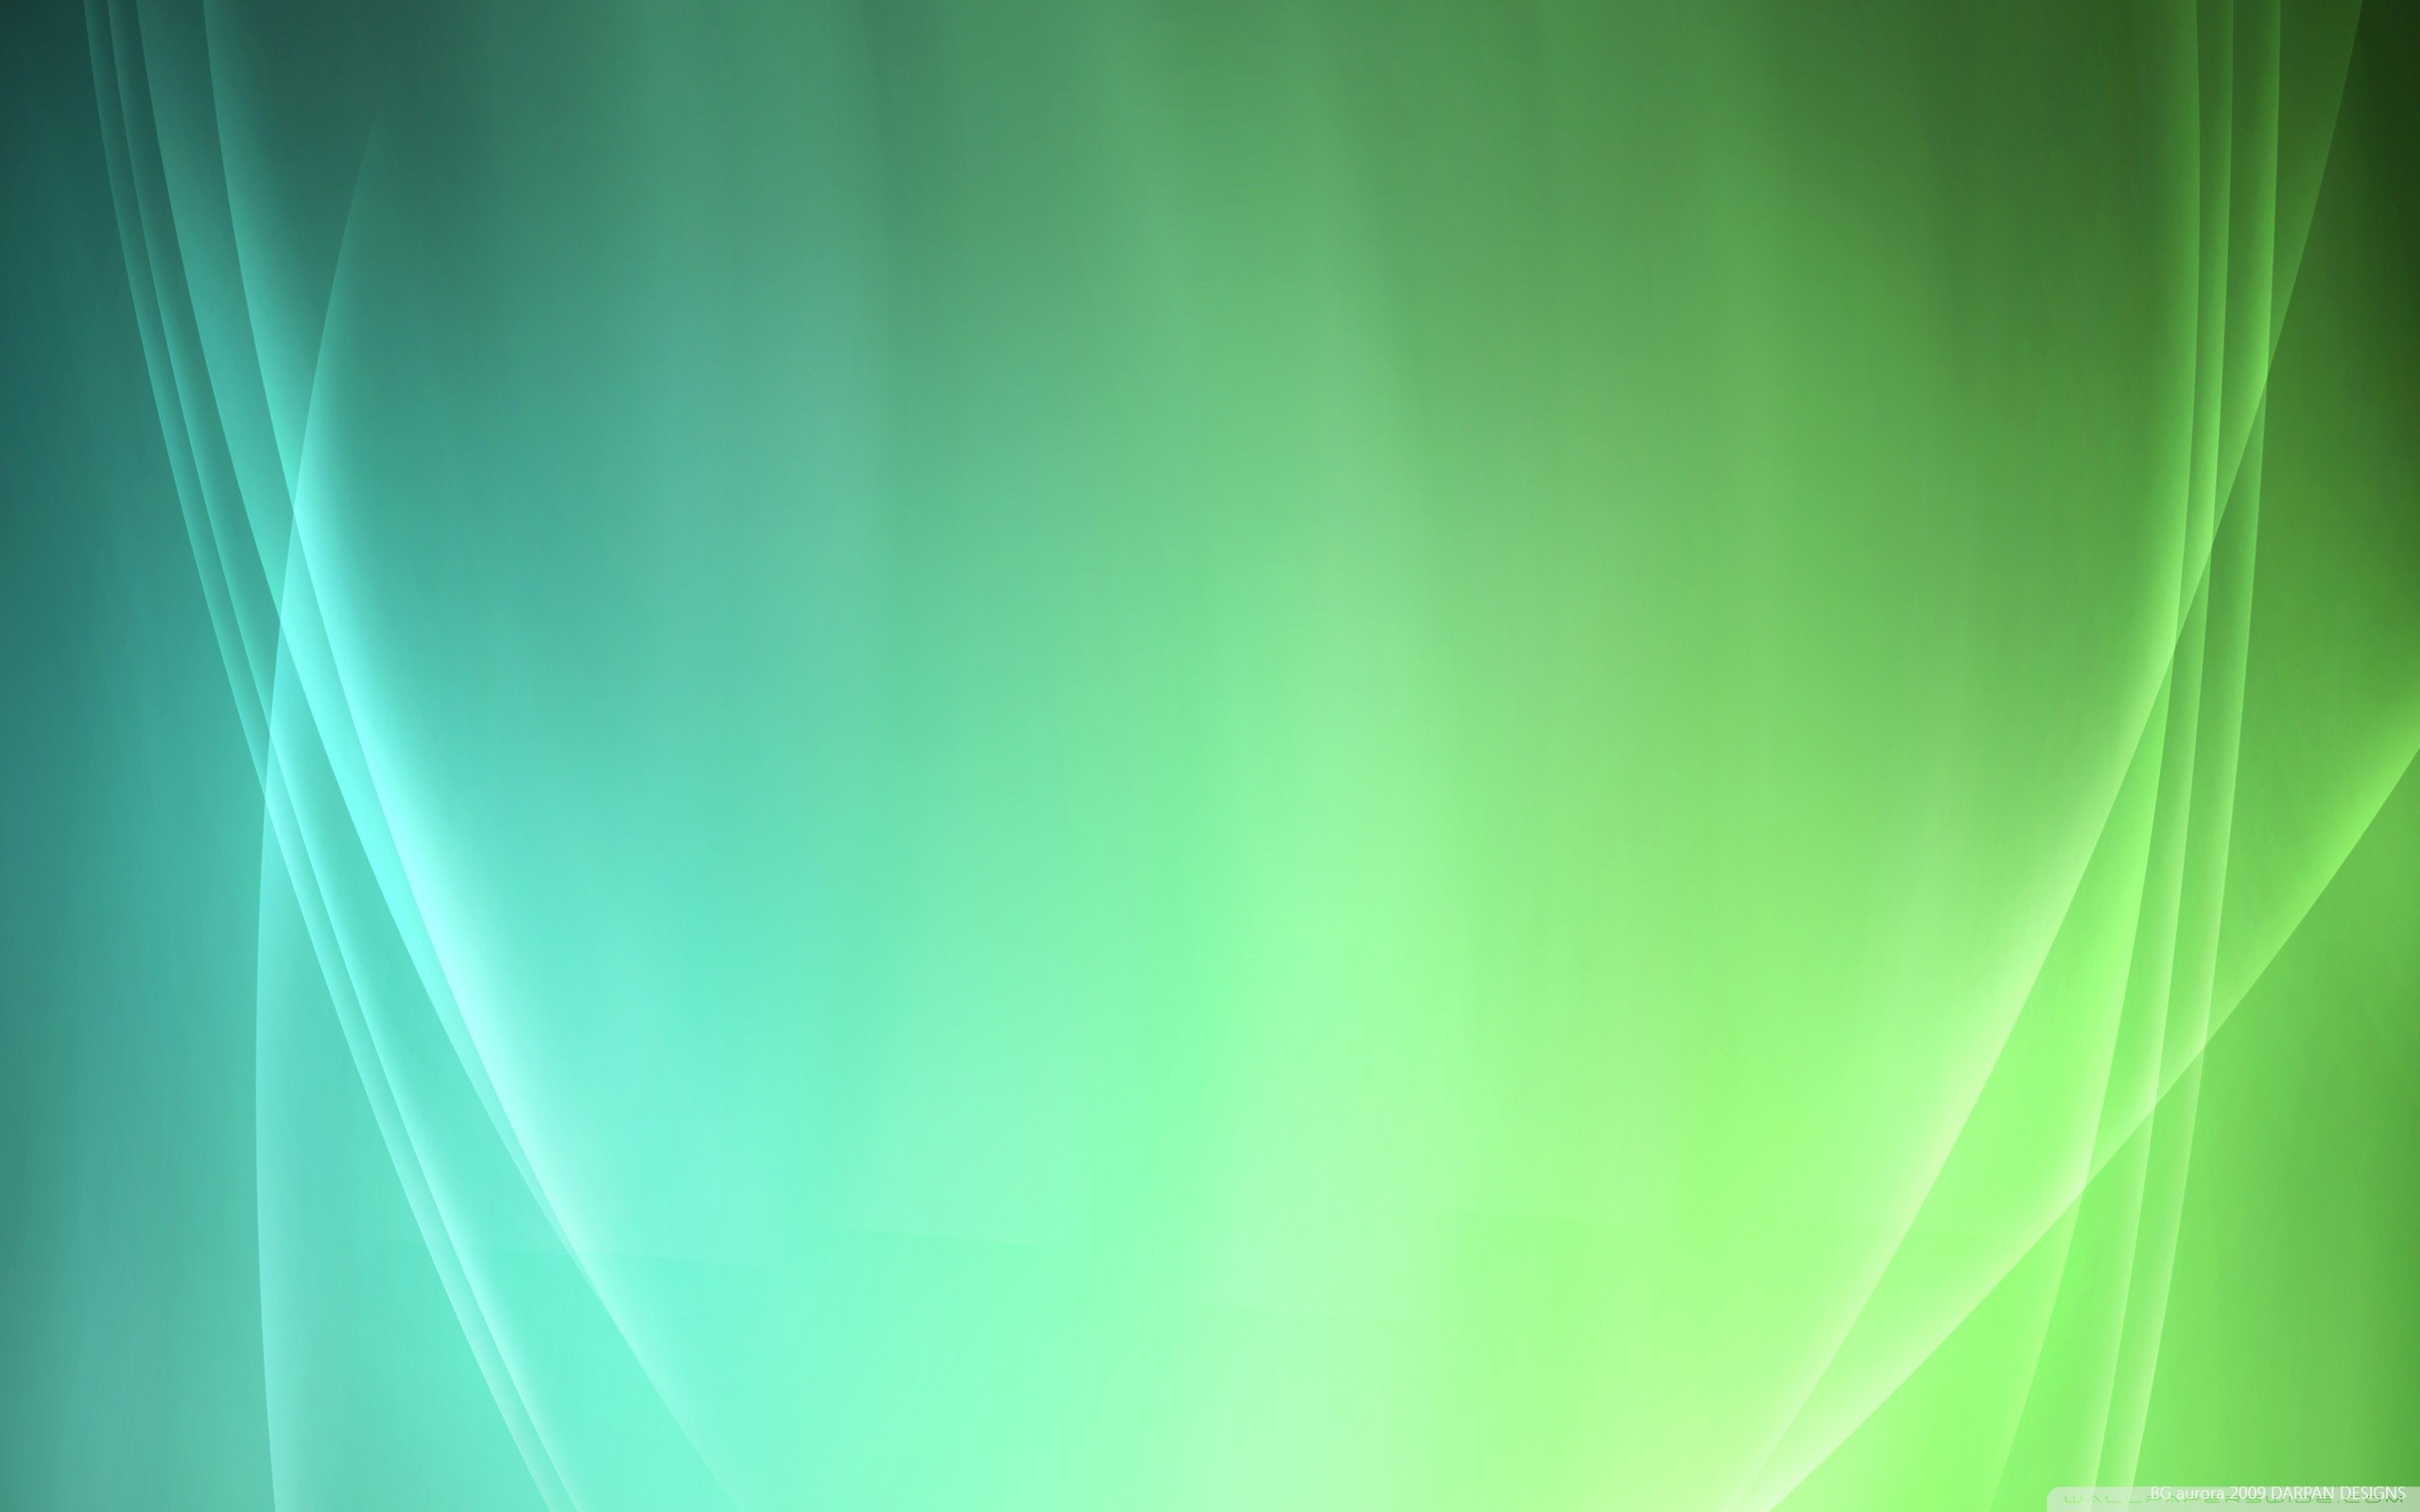 Res: 2560x1600, 1552281 by Jonie Kosakowski - Latest Green Blue Background Images |  Download for Free ...